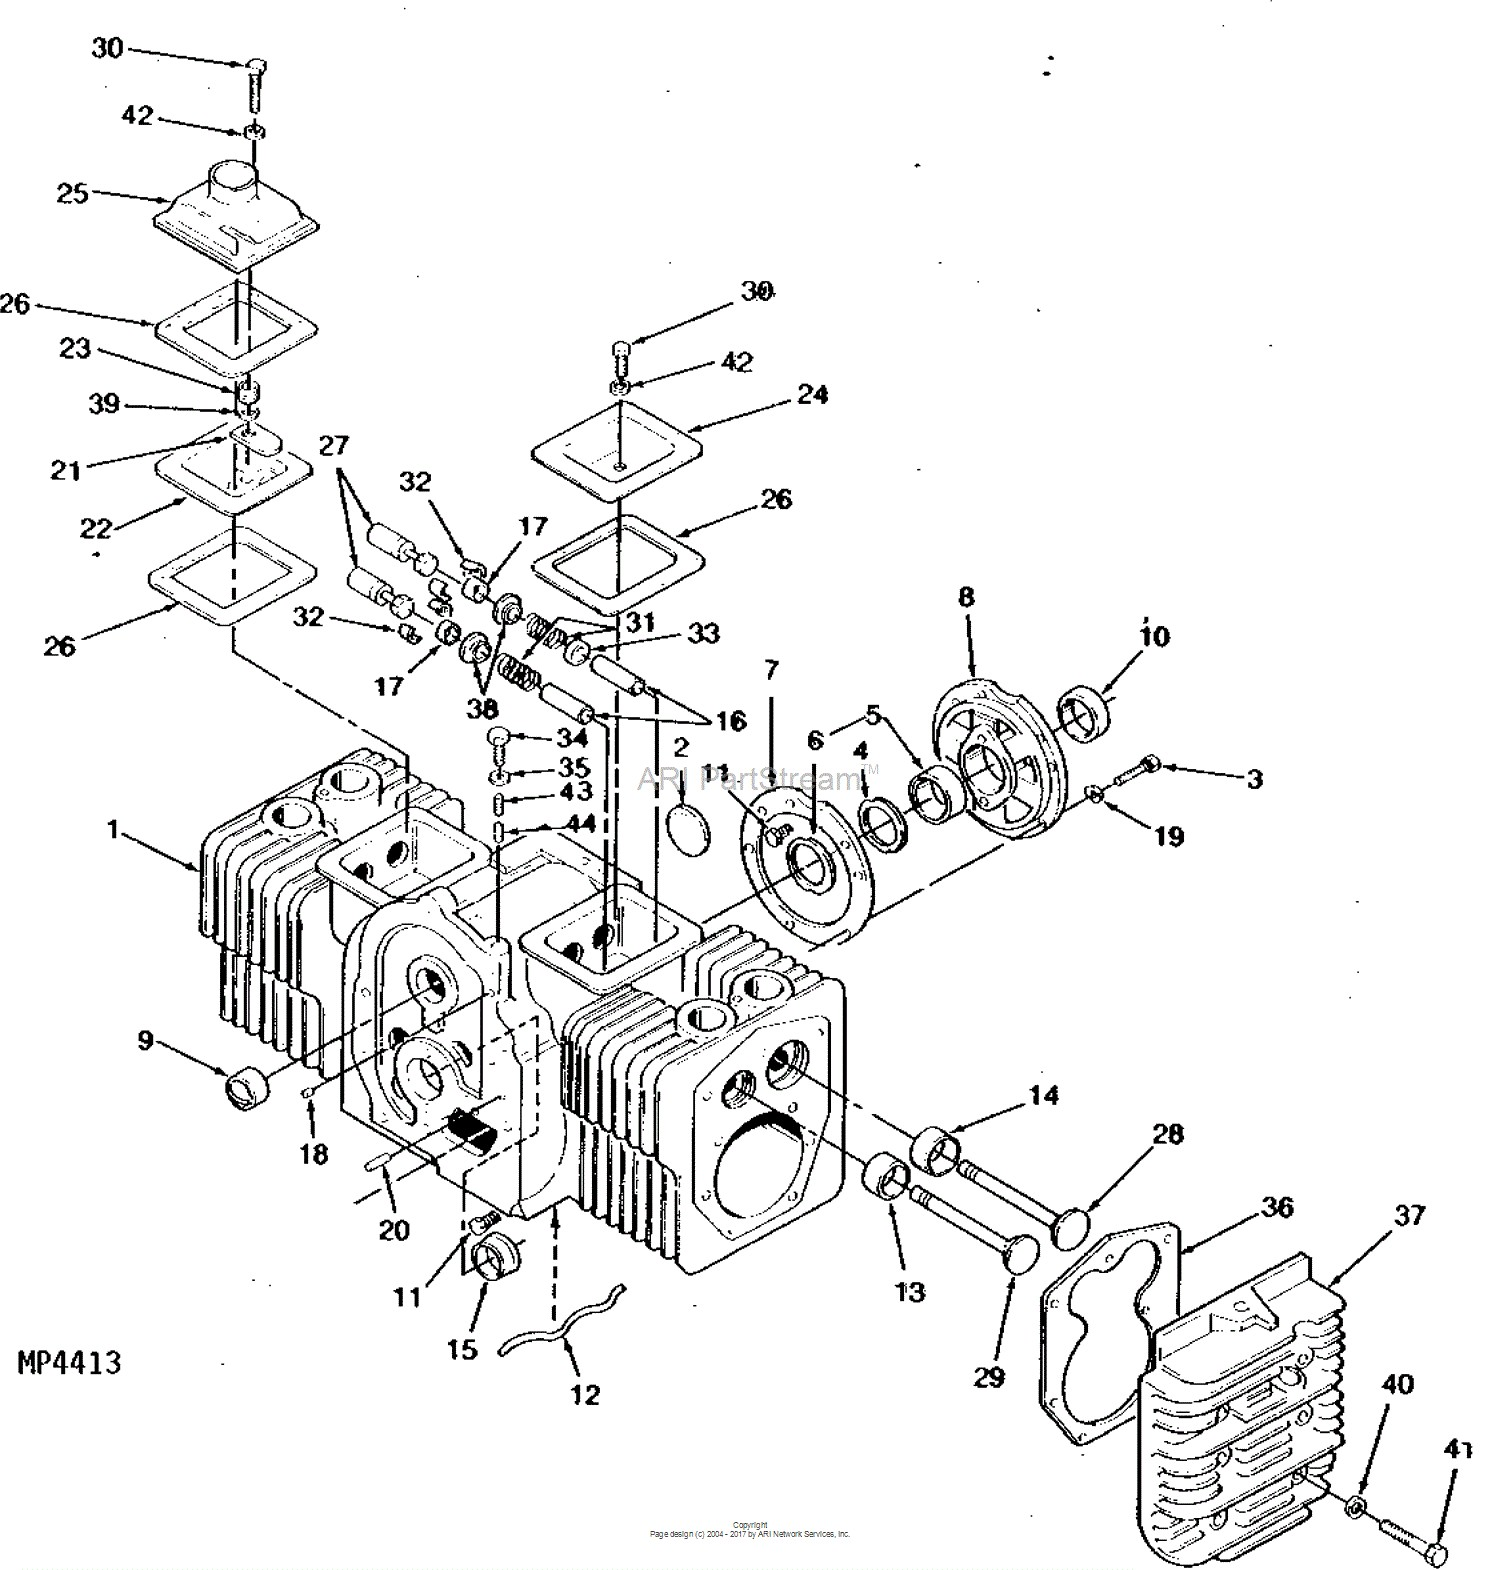 Onan Engine Parts Diagram John Deere Parts Diagrams John Deere 317 Hydrostatic Tractor 17 Hp Of Onan Engine Parts Diagram